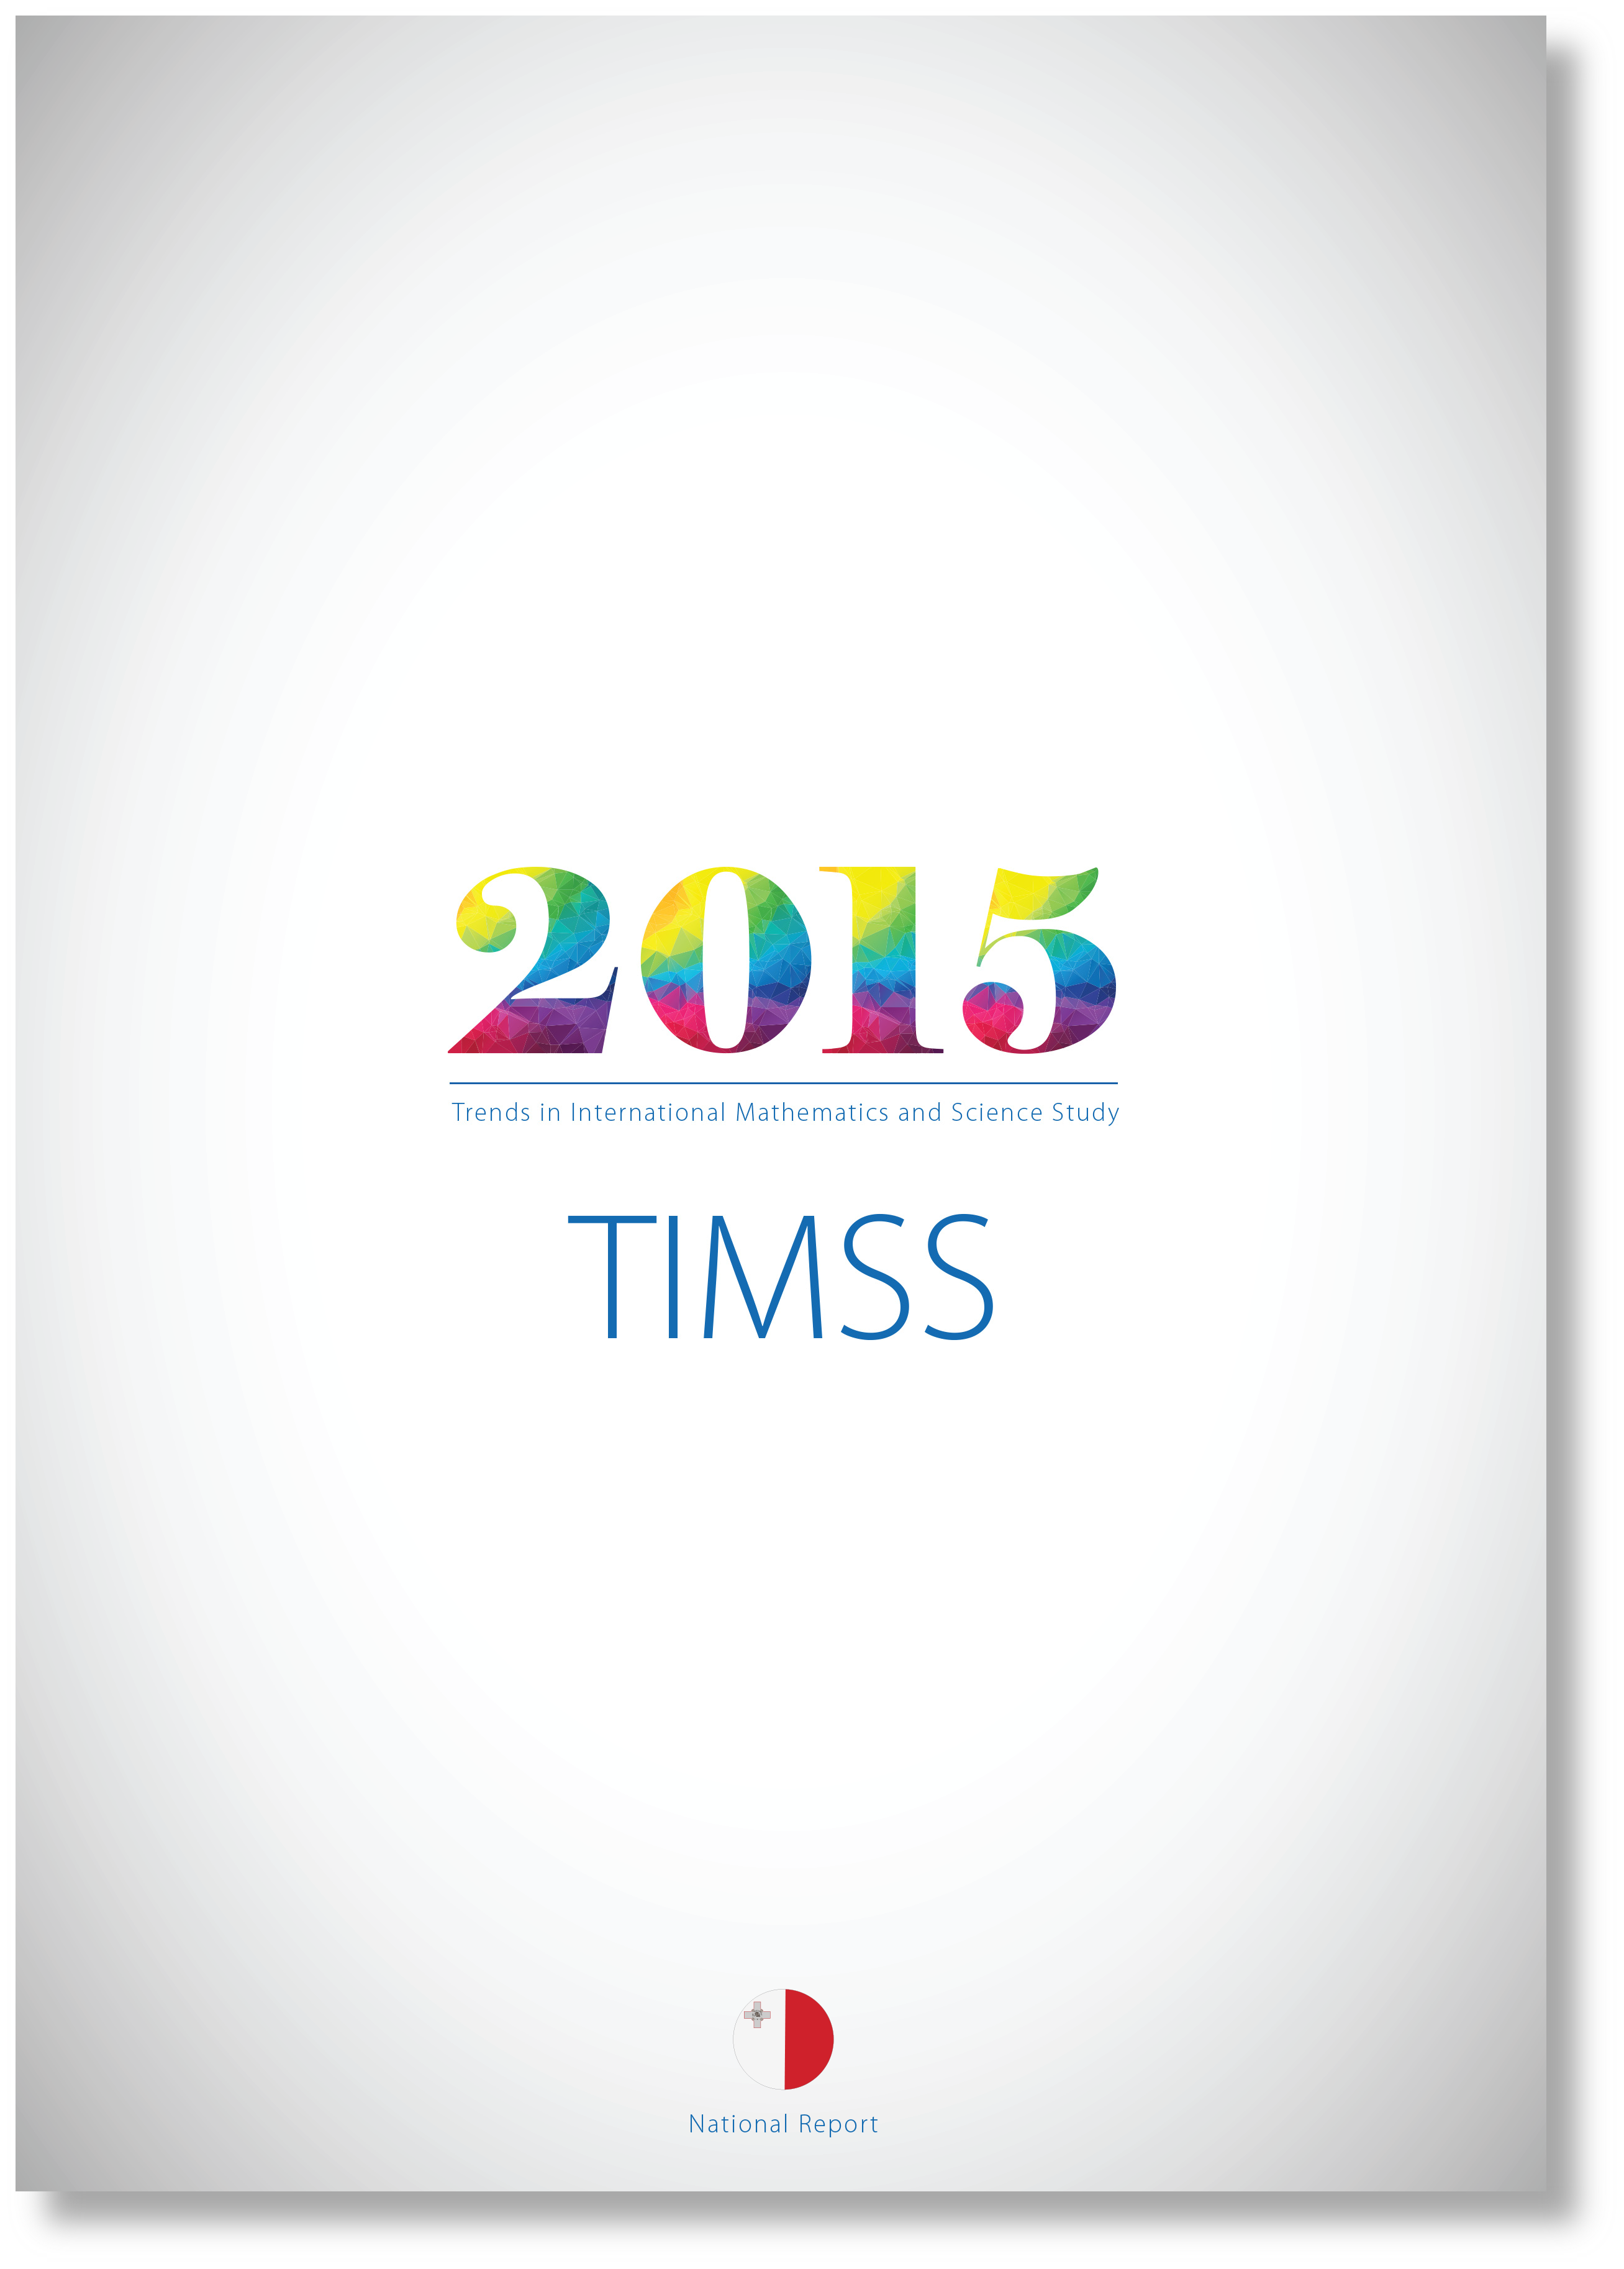 TIMSS-Report-new_cover_shd.png